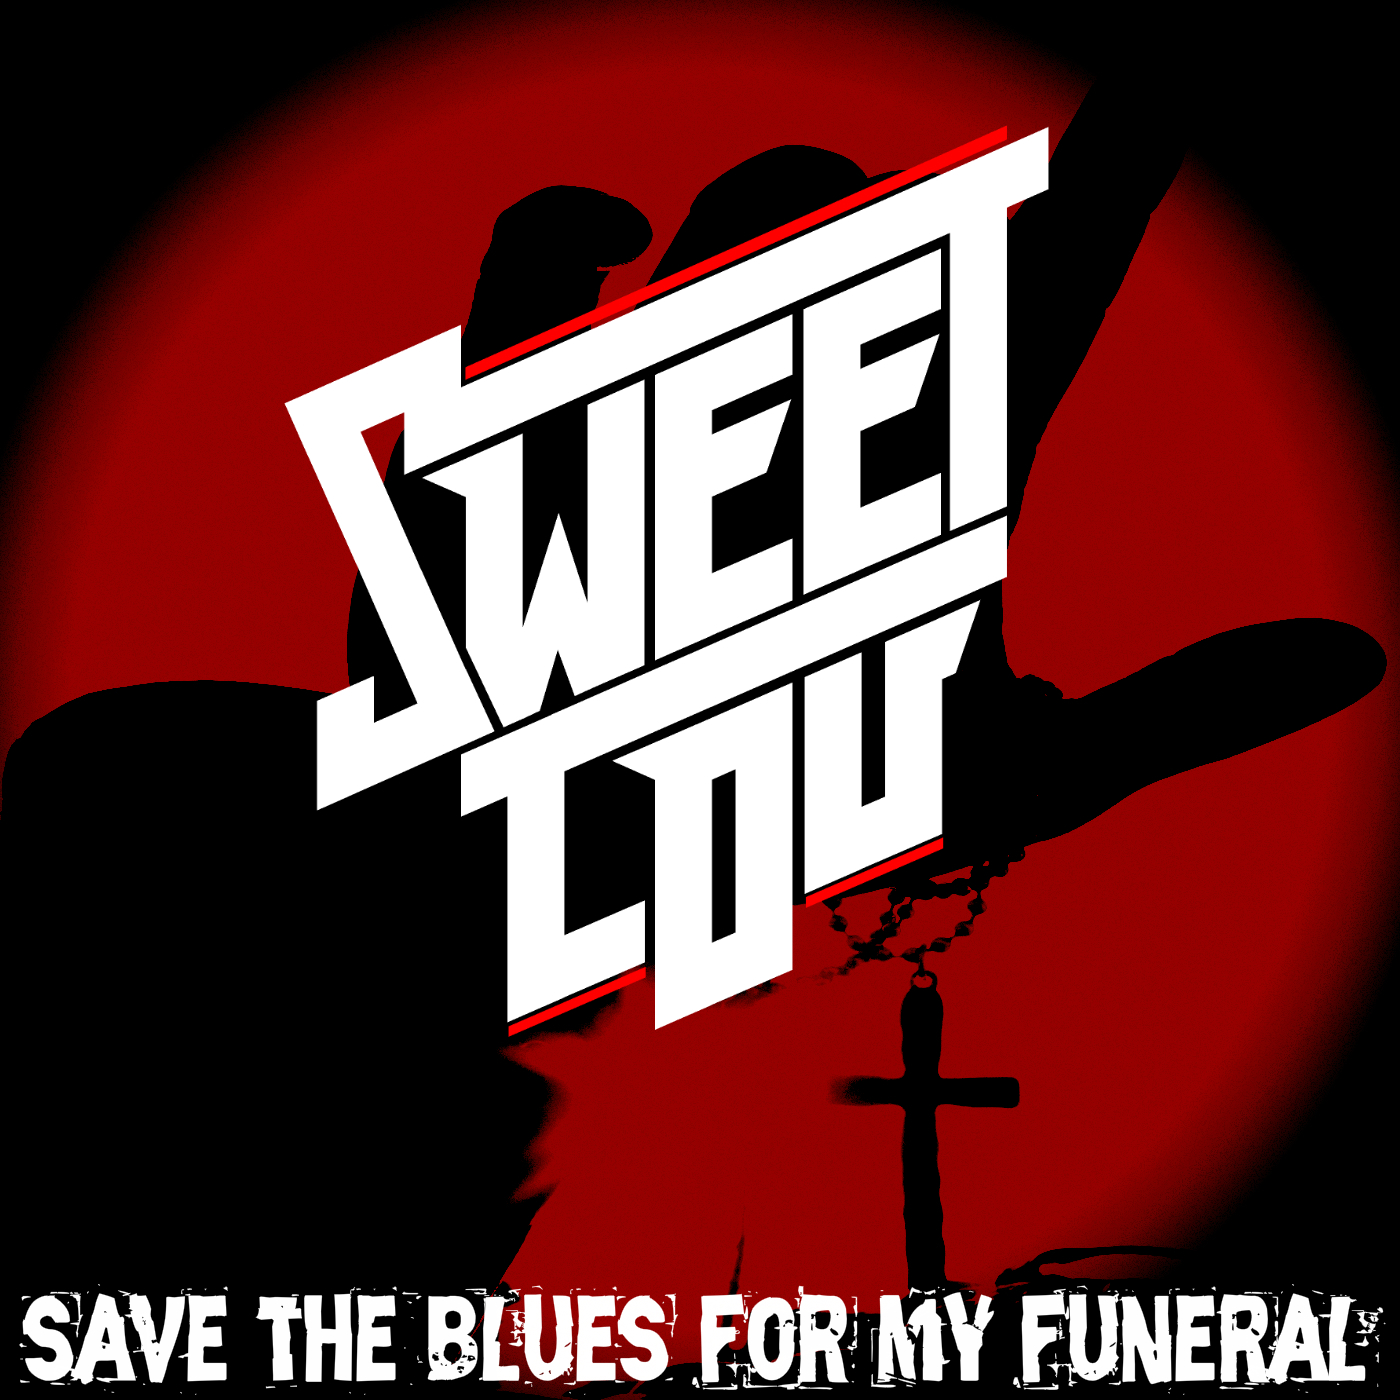 Save the blues for my funeral